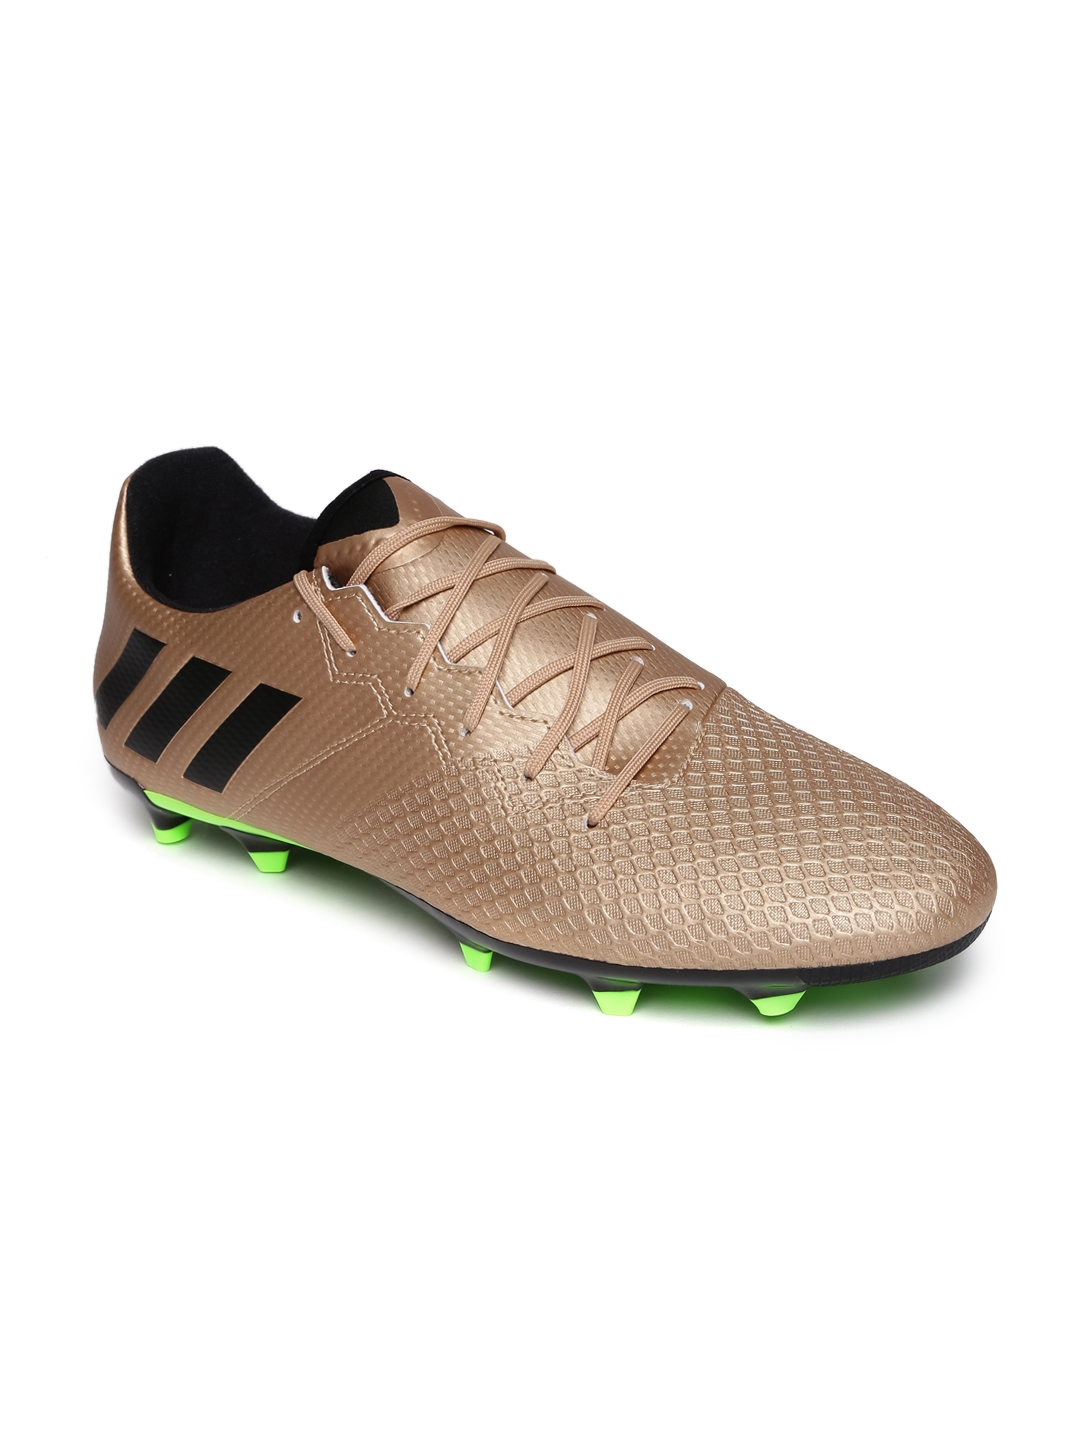 ADIDAS Men Muted Gold Toned Messi 16.3 FG Football Shoes